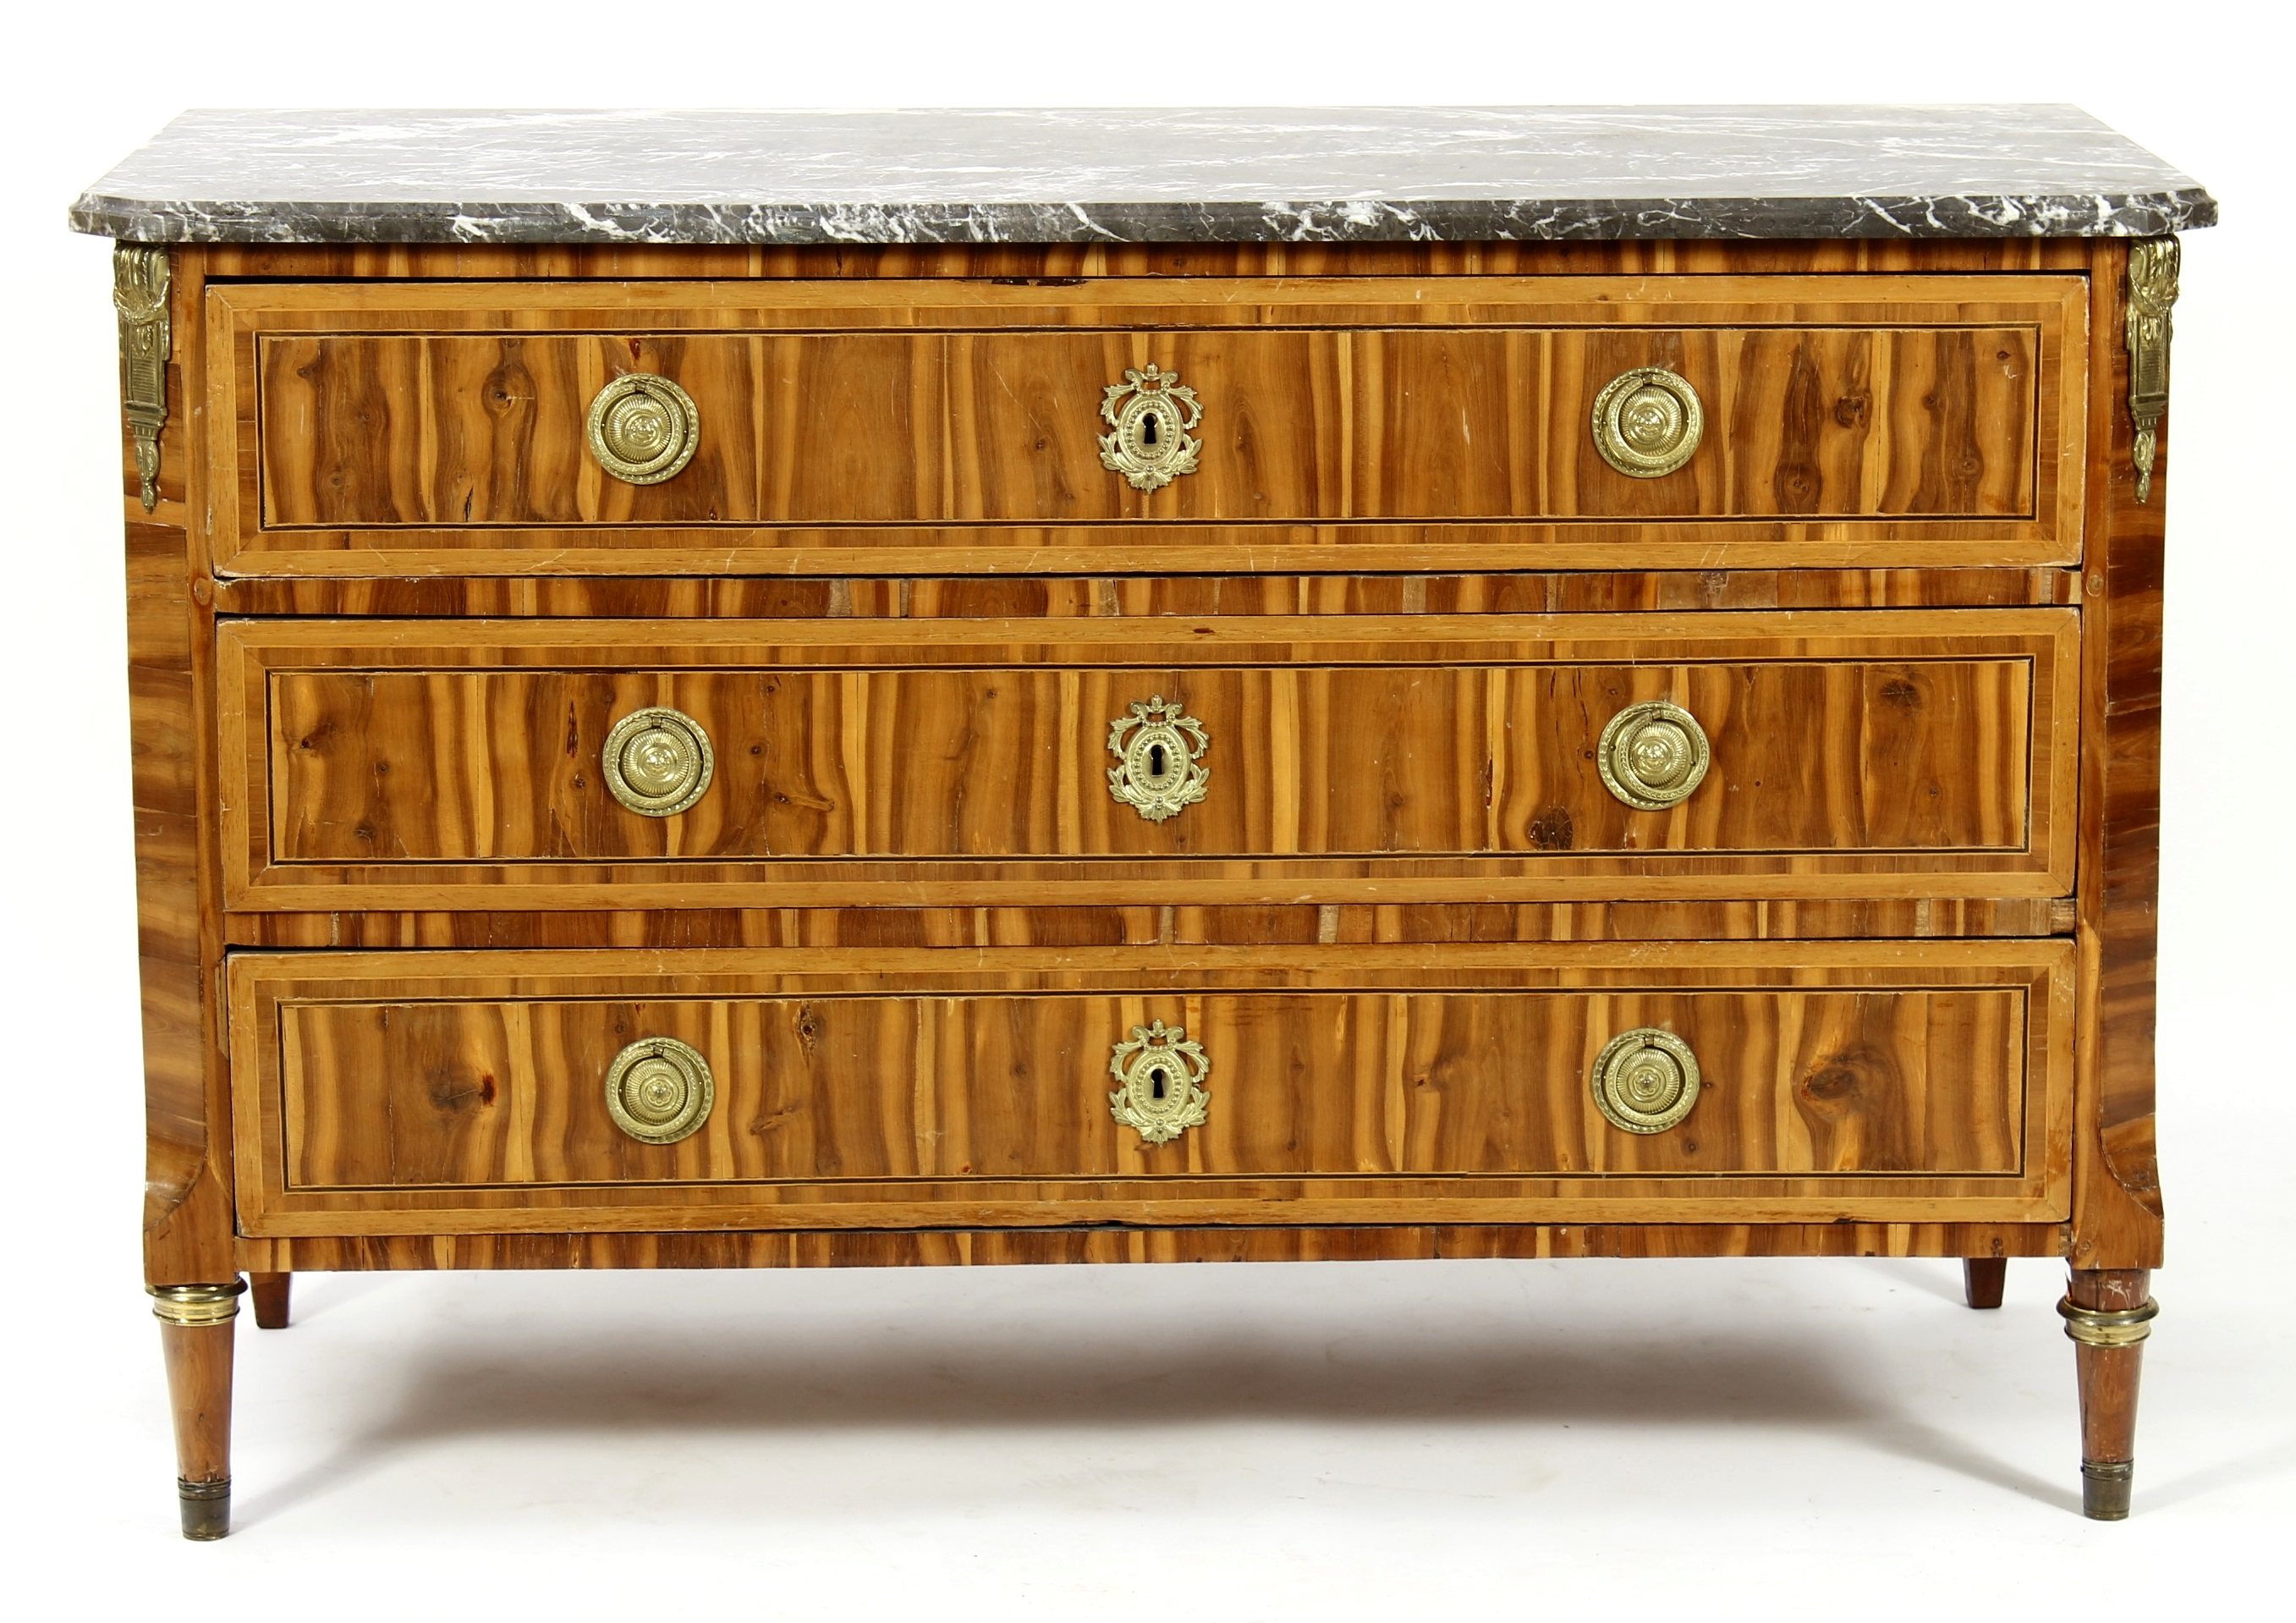 Louis XVI Exotic Veneer Wood Commode. Sold For $4,375